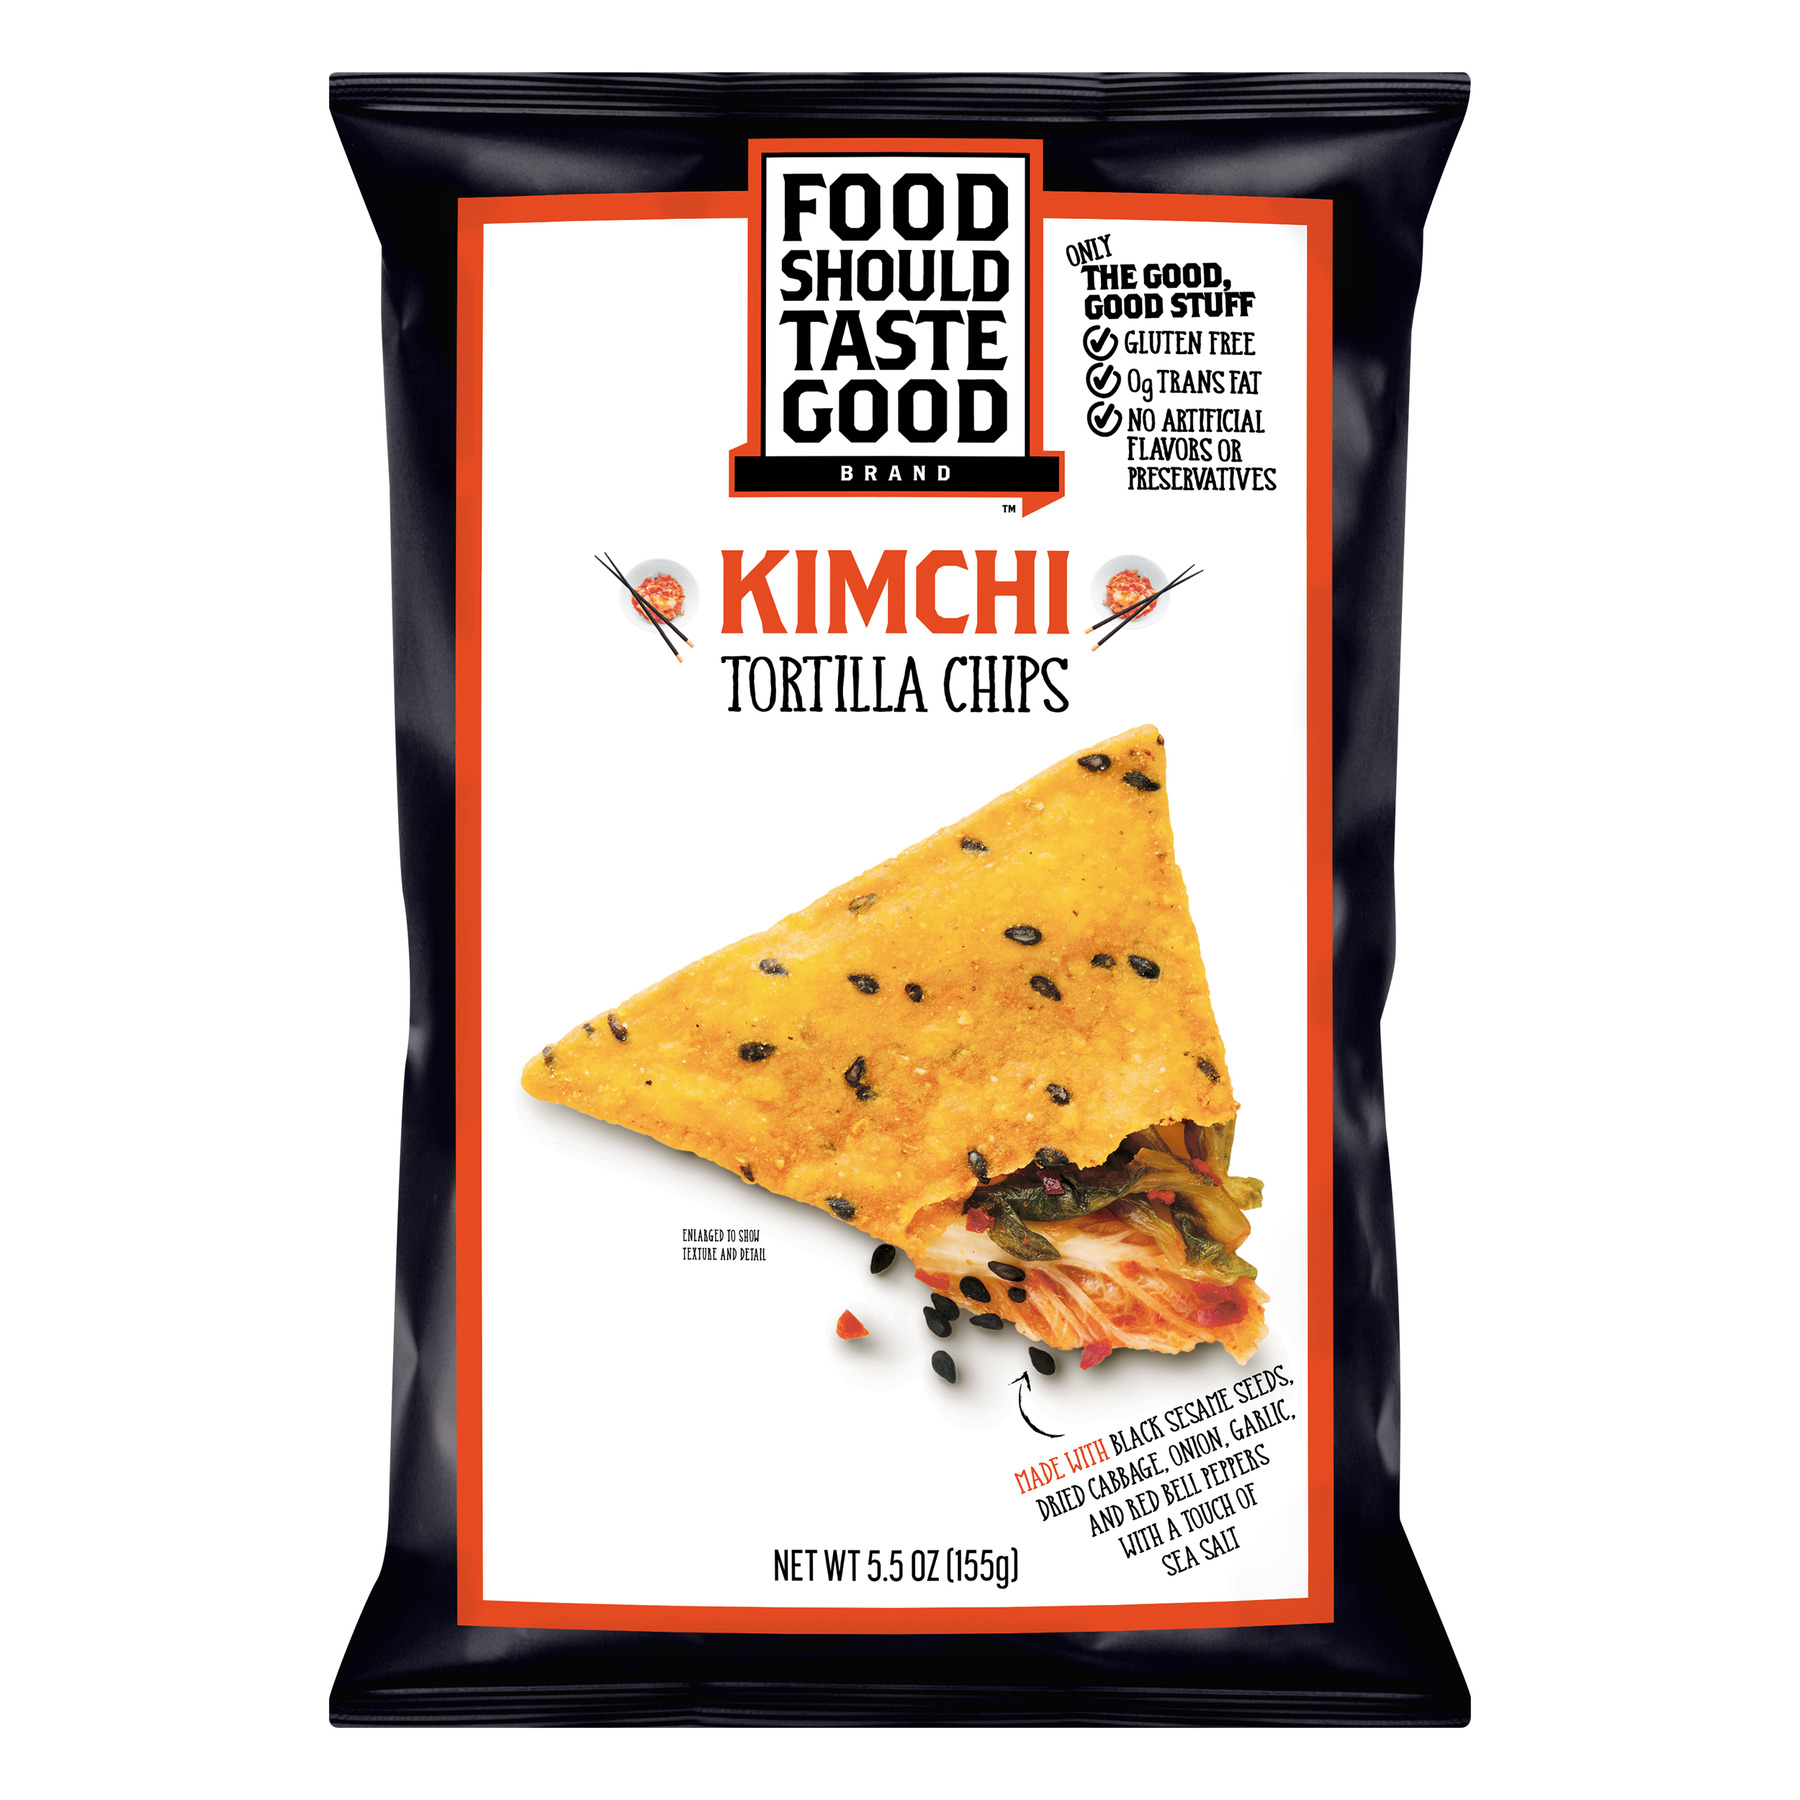 Food Should Taste Good Kimchi Tortilla Chips, 5.5 oz